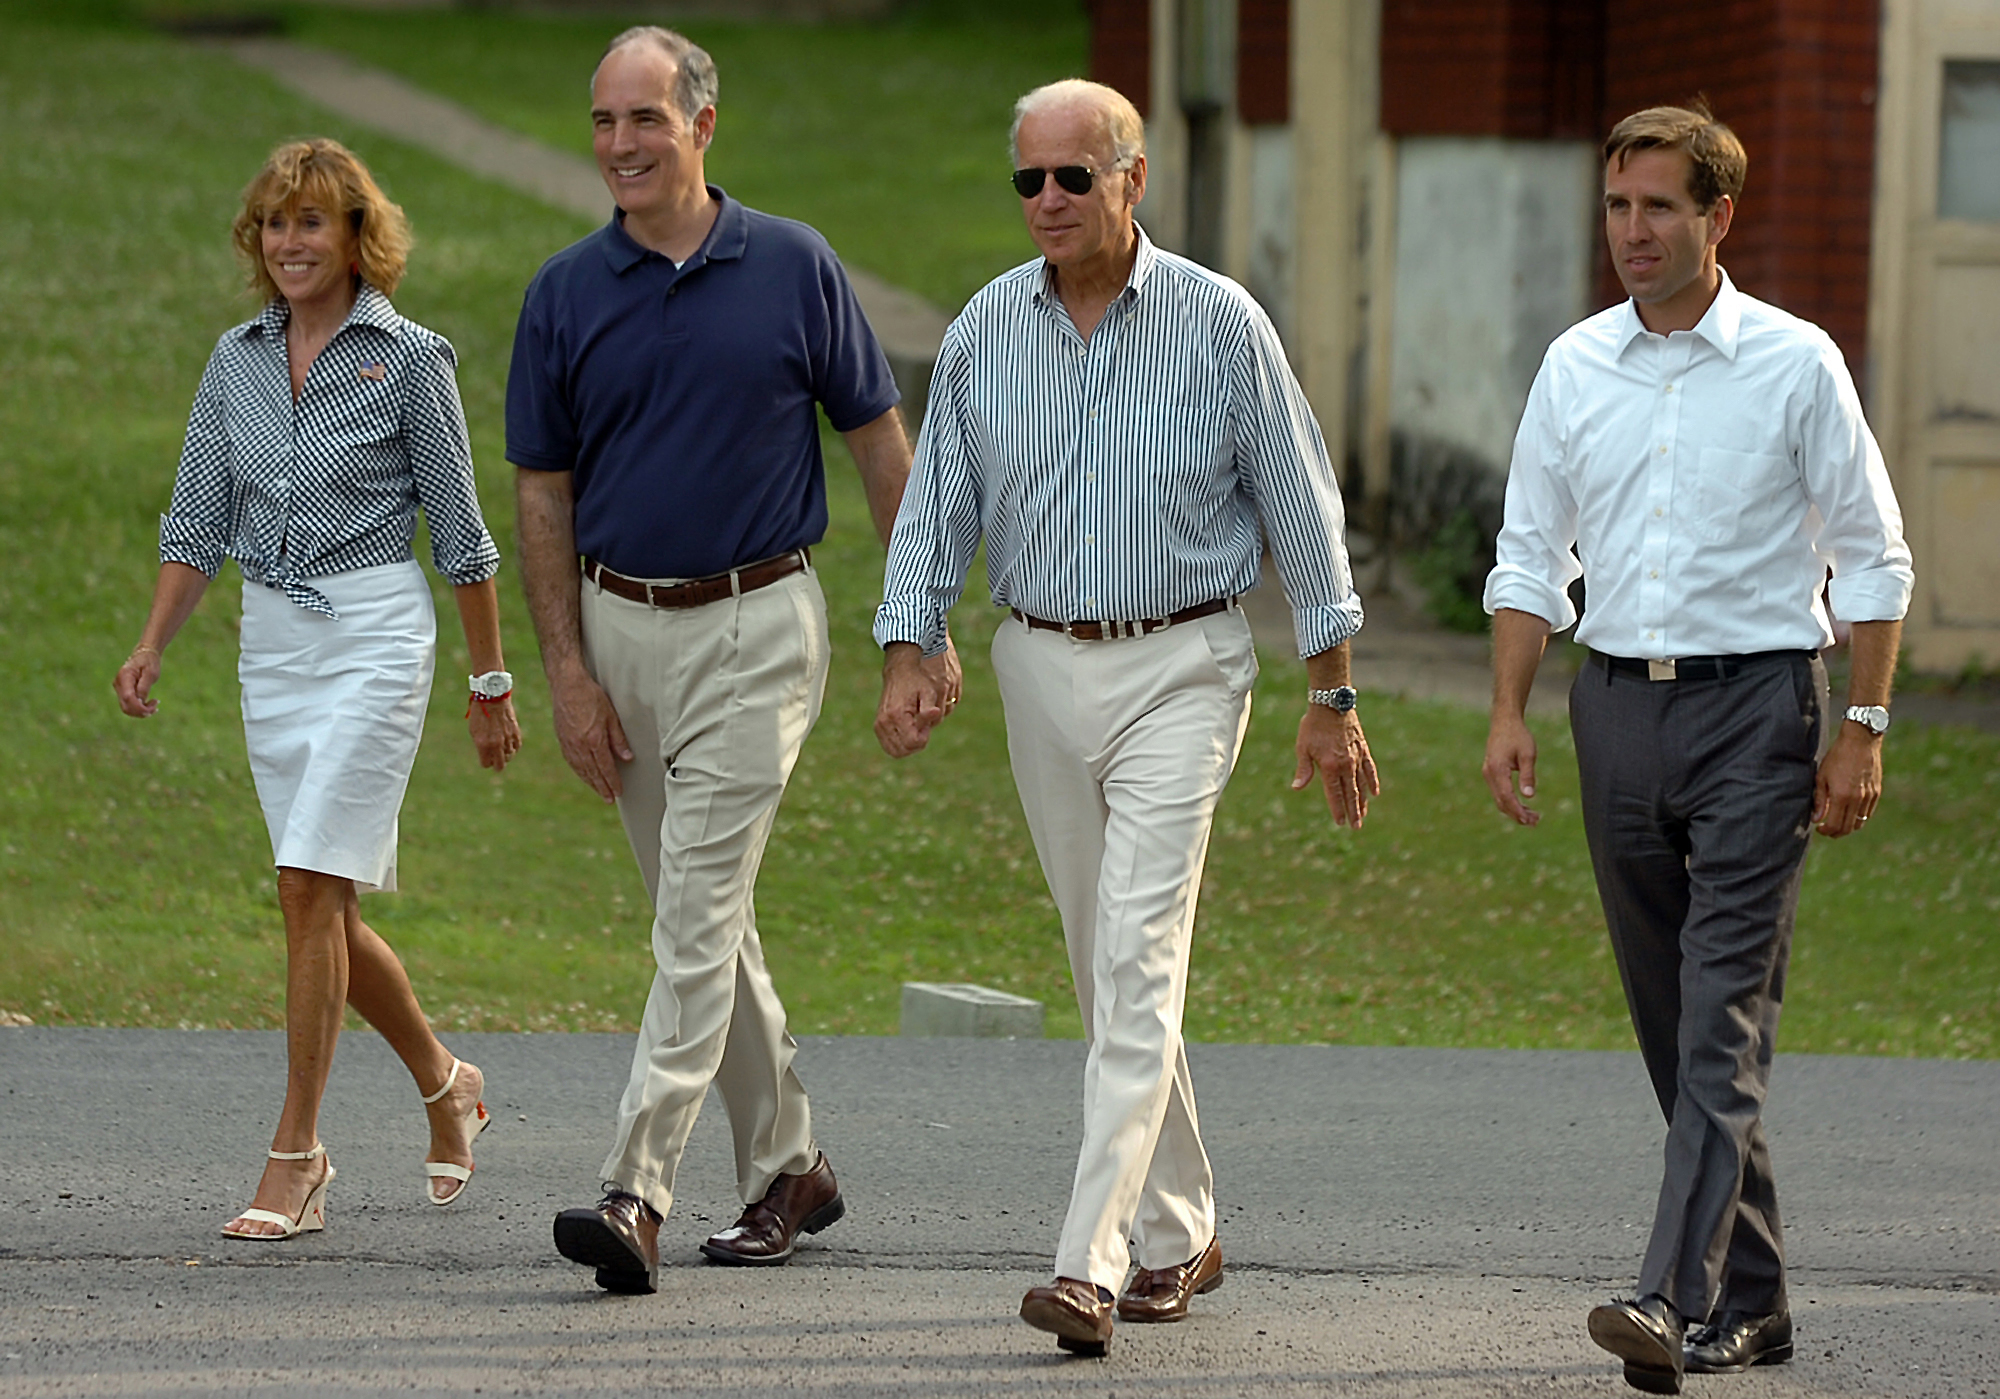 Vice President Joe Biden walks with his sister, Valerie Biden Owens, Pennsylvania Senator Bob Casey, second left, and his son, Beau Biden, Delaware Attorney General, during a visit to Scranton, Pa., on July 3, 2012.